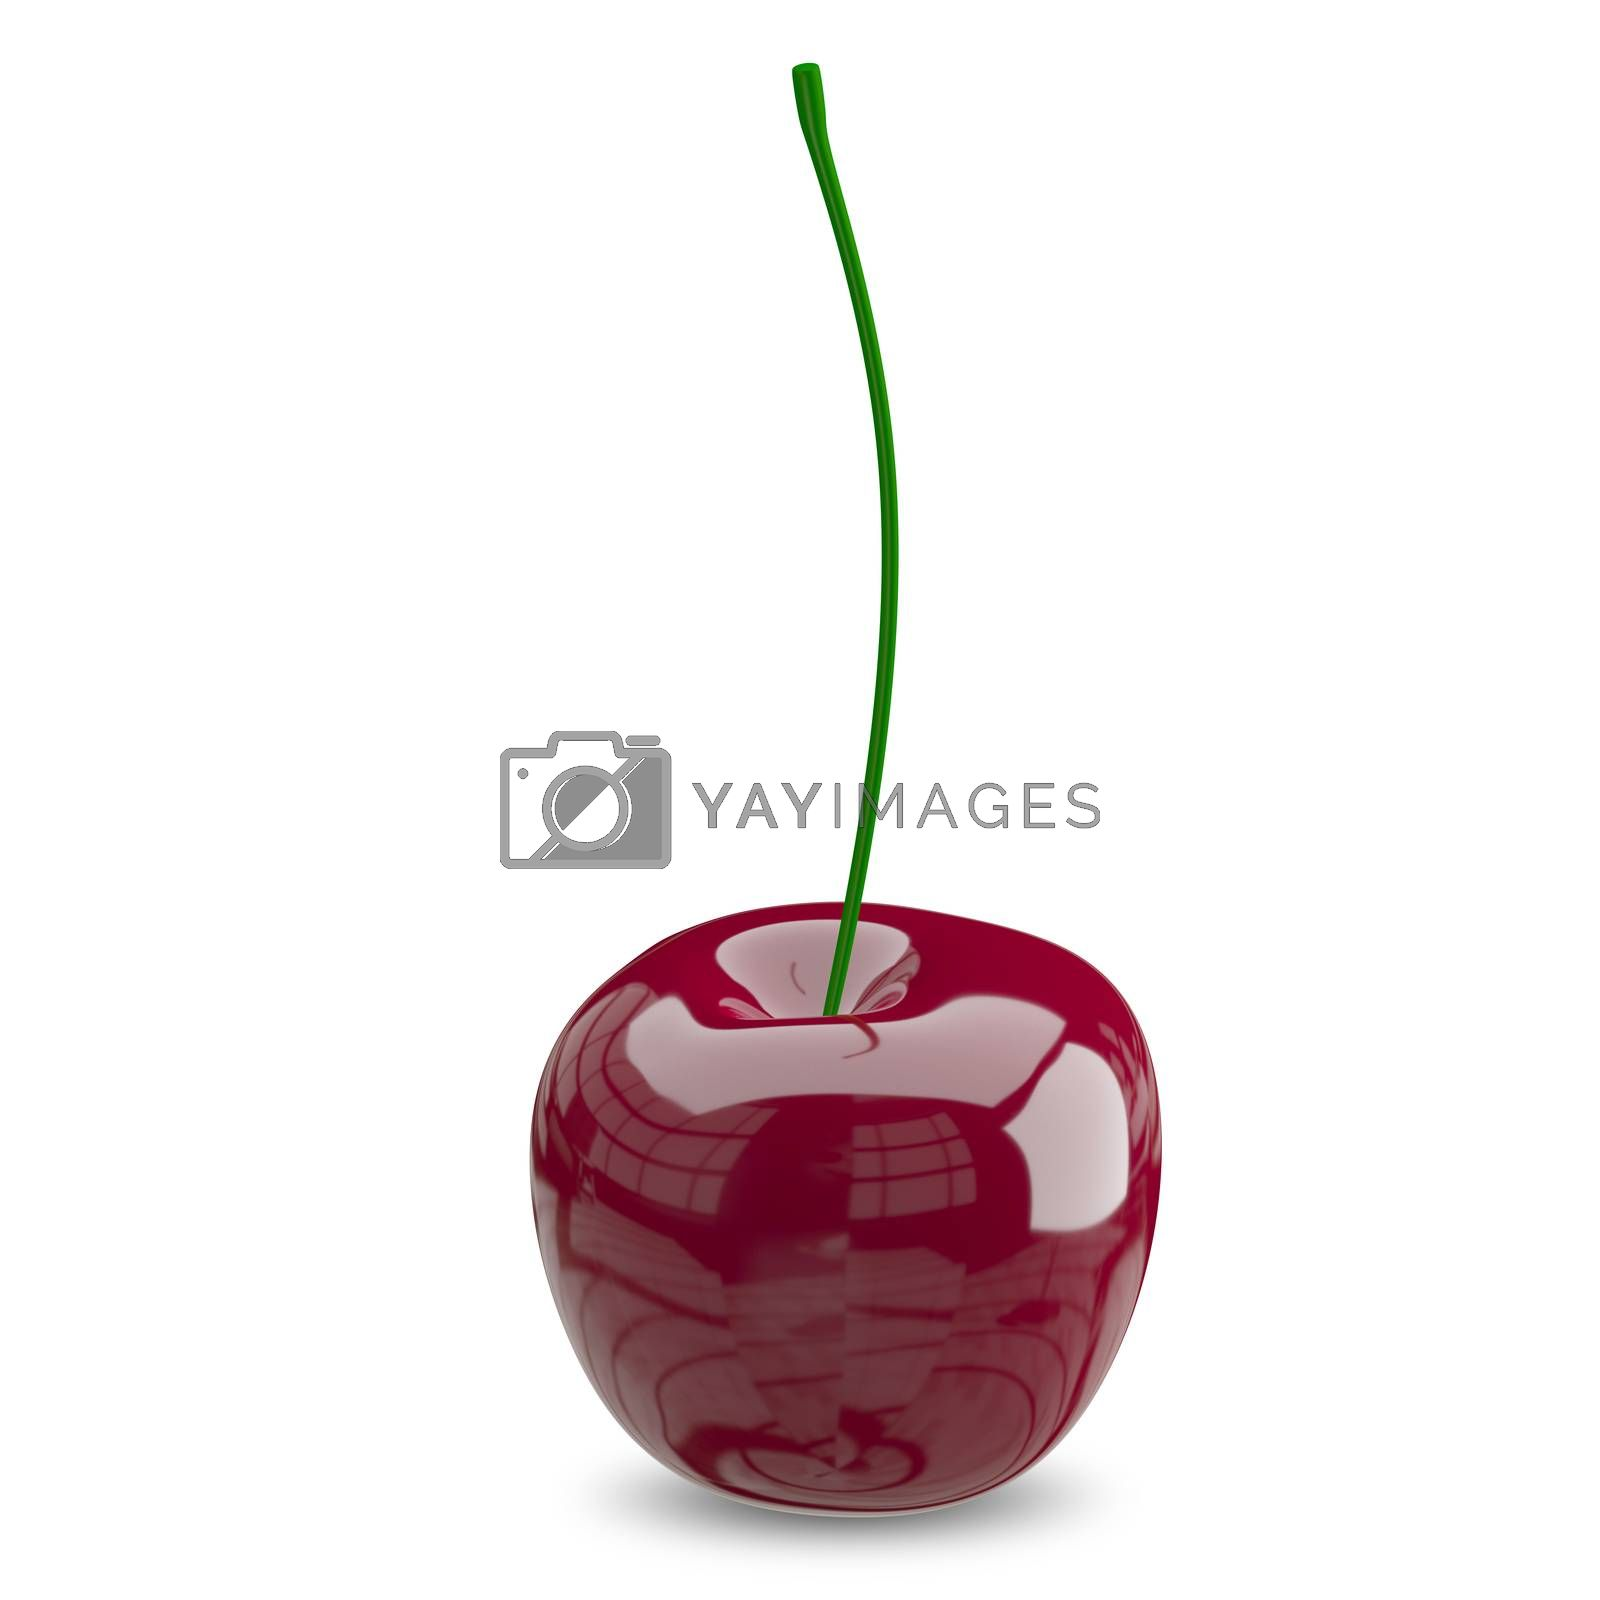 3D Illustration of a Ripe Cherry by brux